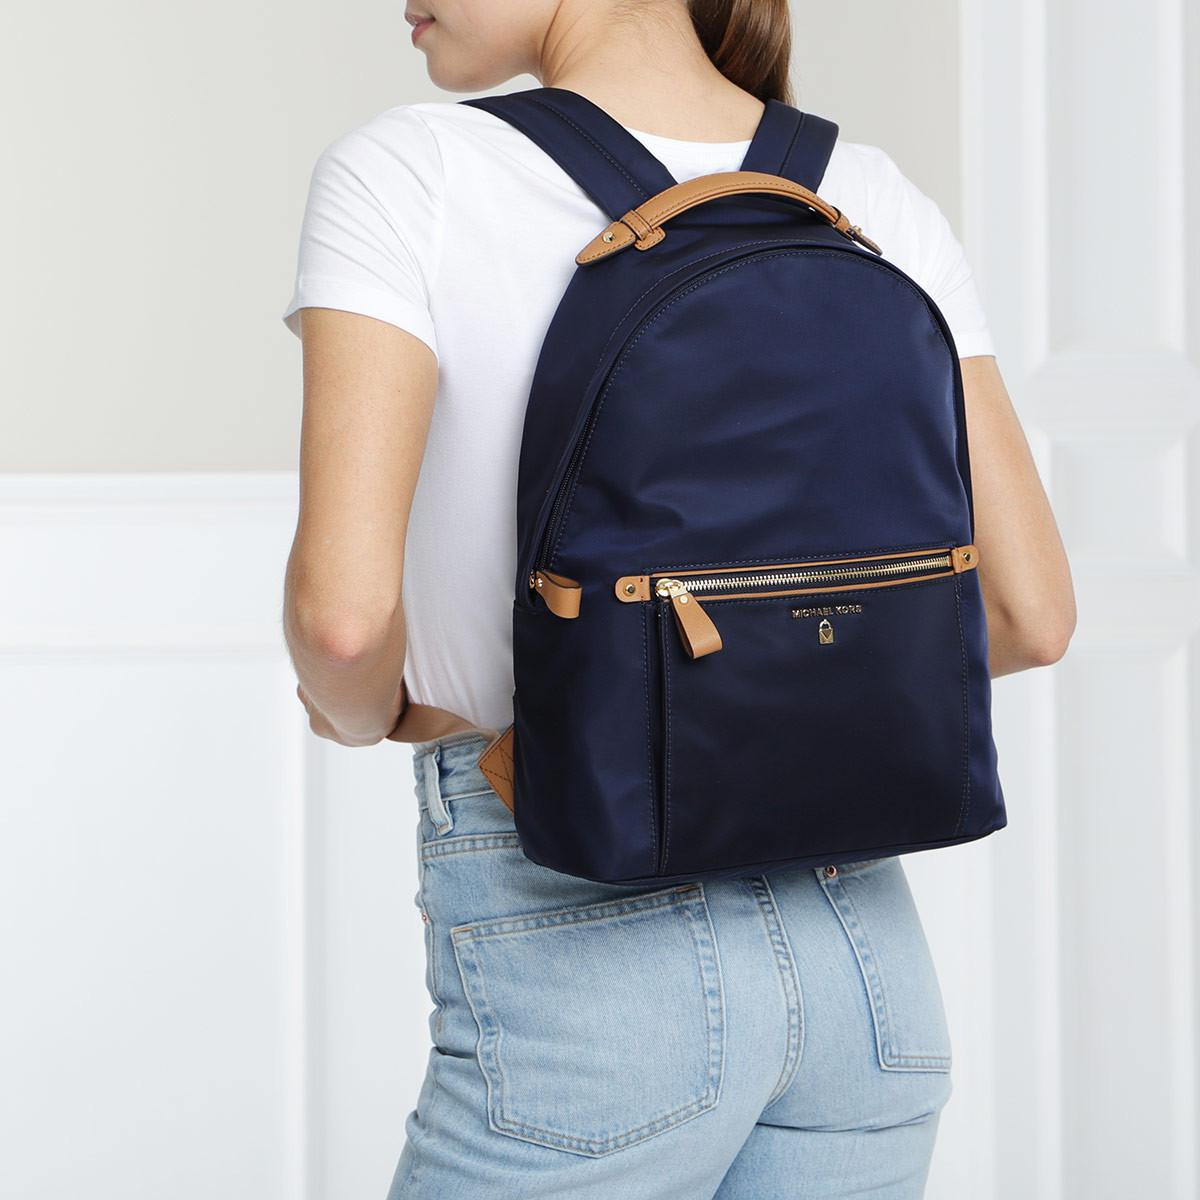 833e7cba9895 Michael Kors - Blue Nylon Kelsey Lg Backpack Admiral - Lyst. View fullscreen